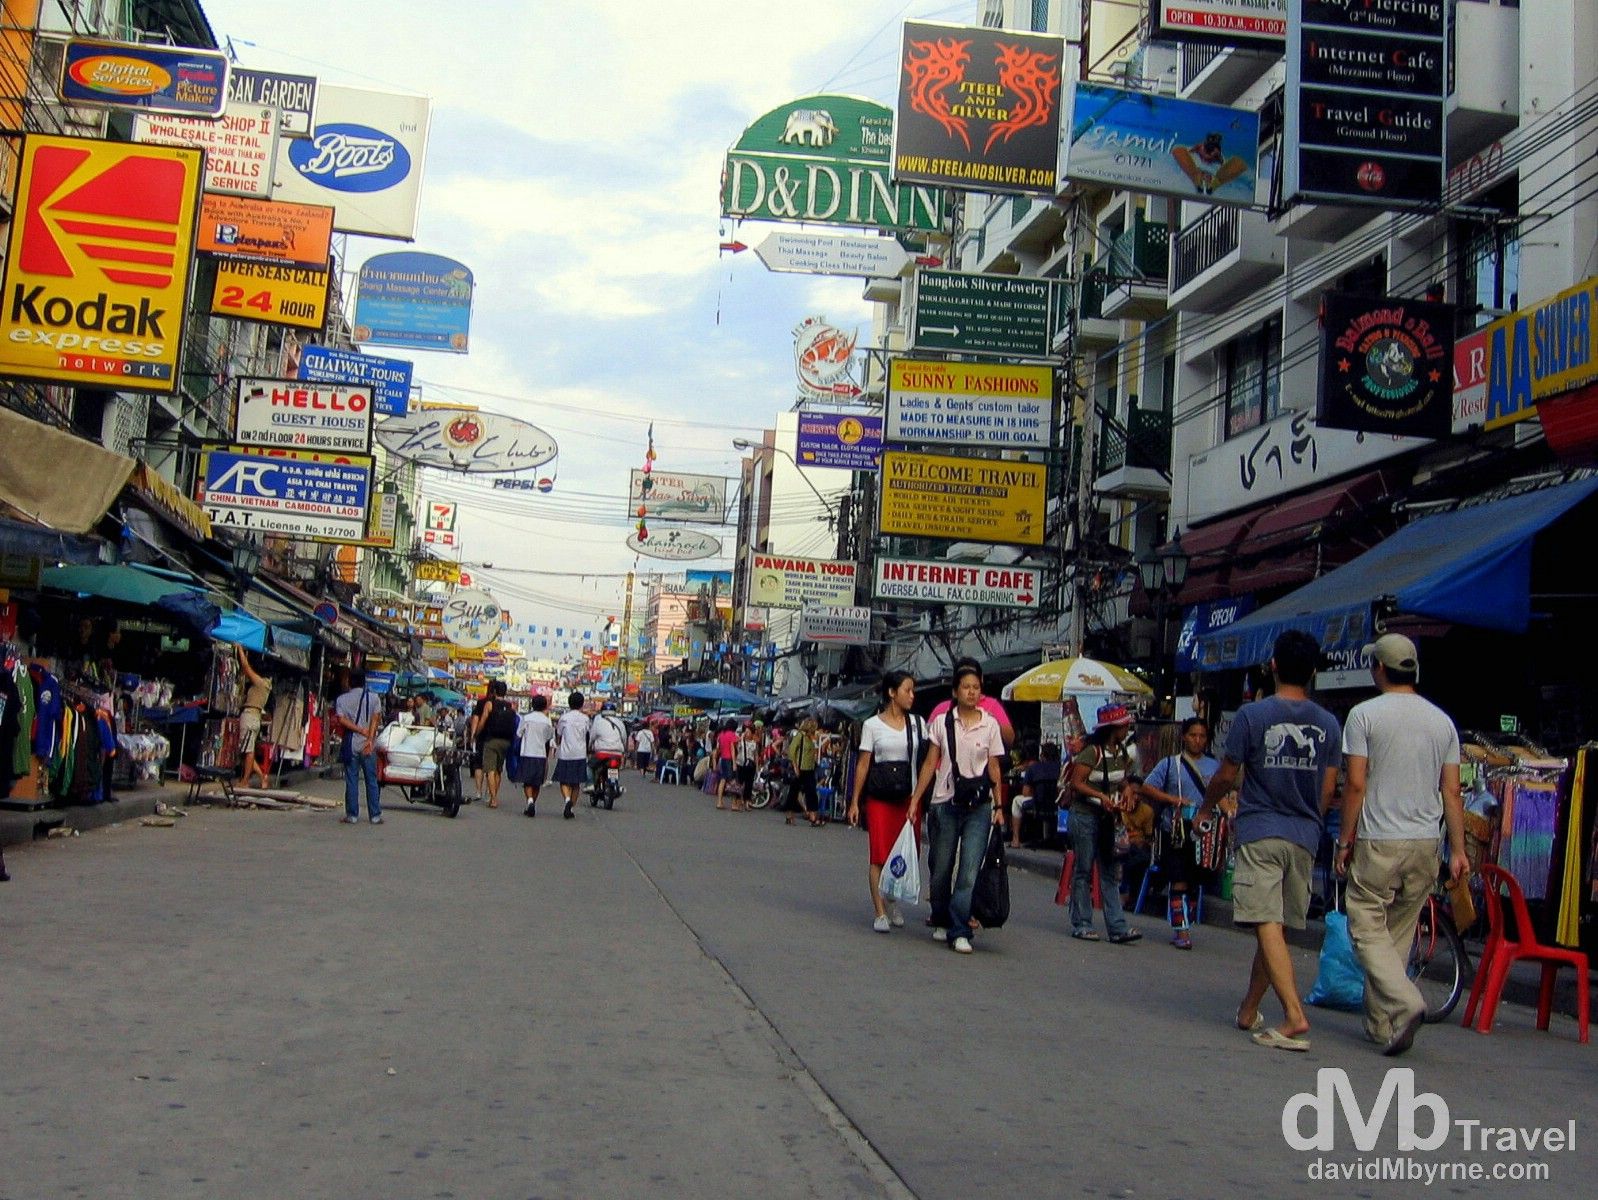 The backpacker hangout of the Khao San Road in Bangkok, Thailand. September 22nd, 2005.